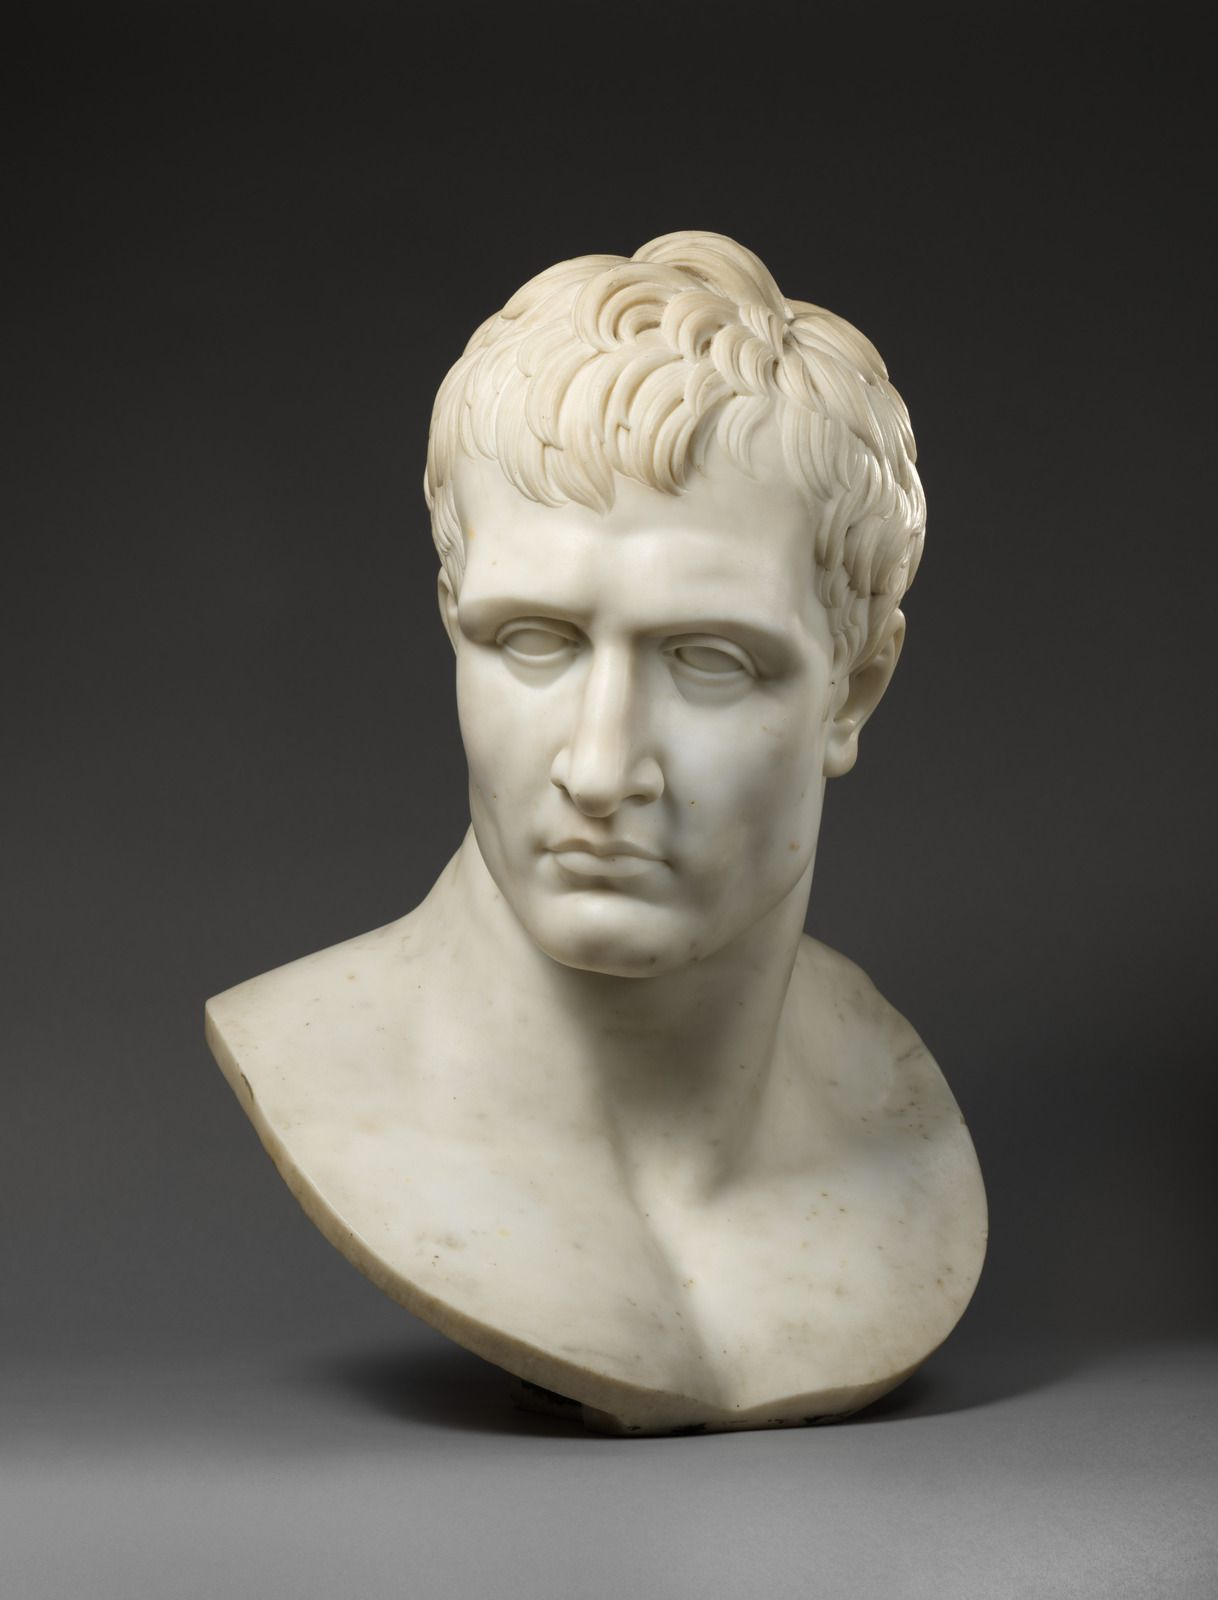 Canova - Napoléon - Photos: The MET